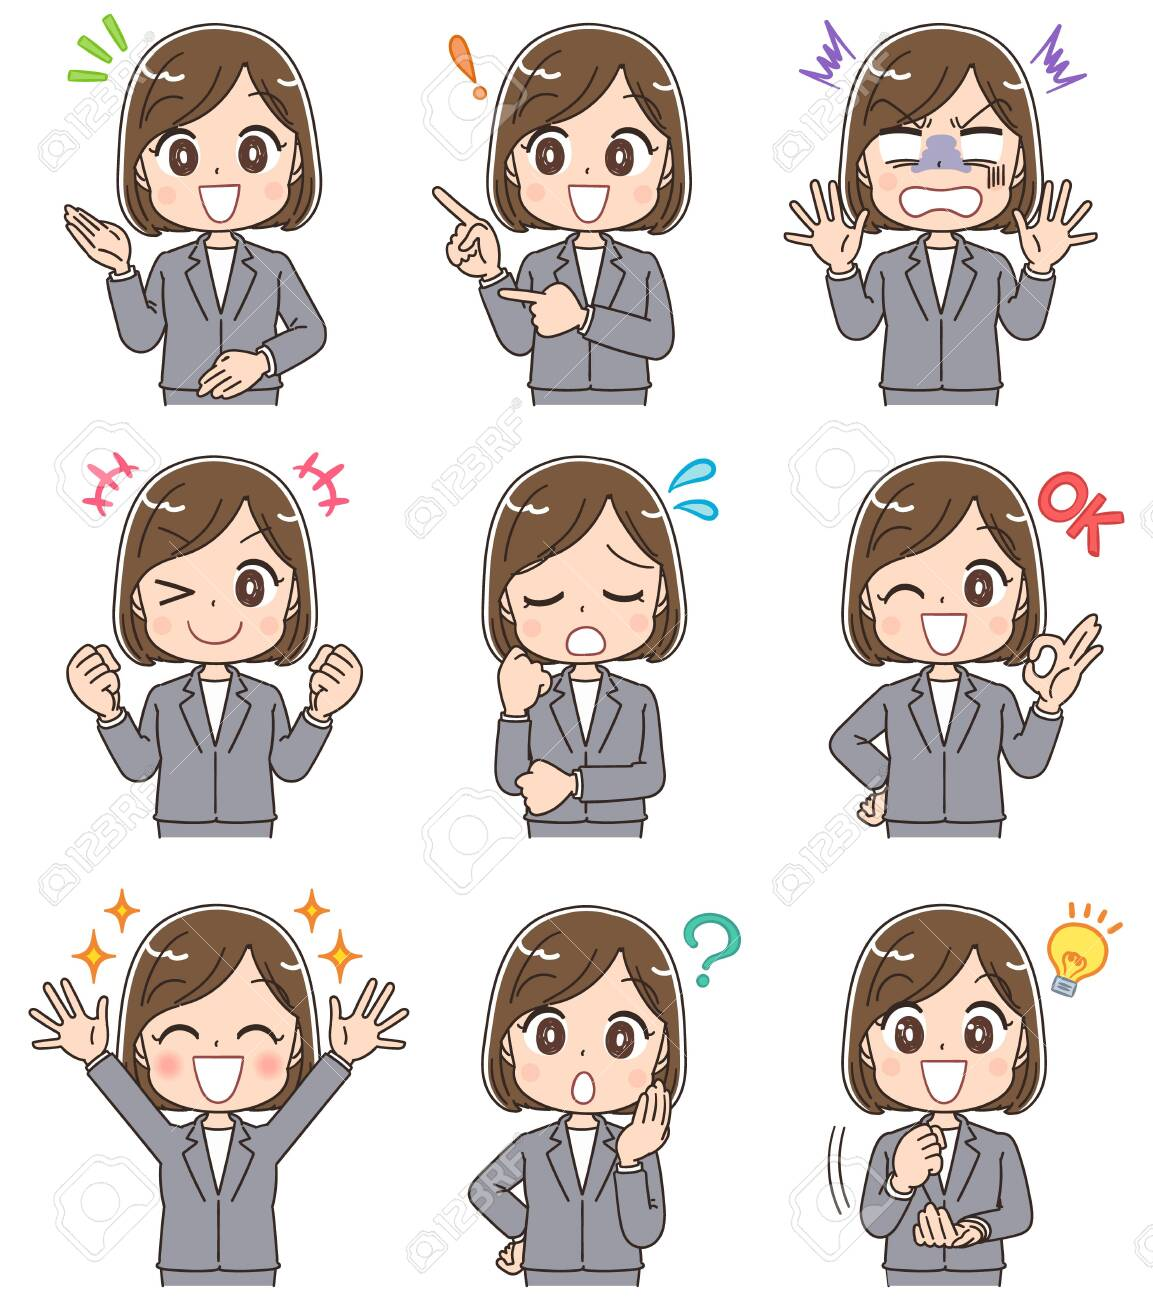 Young business woman has various facial expressions. - 133801478